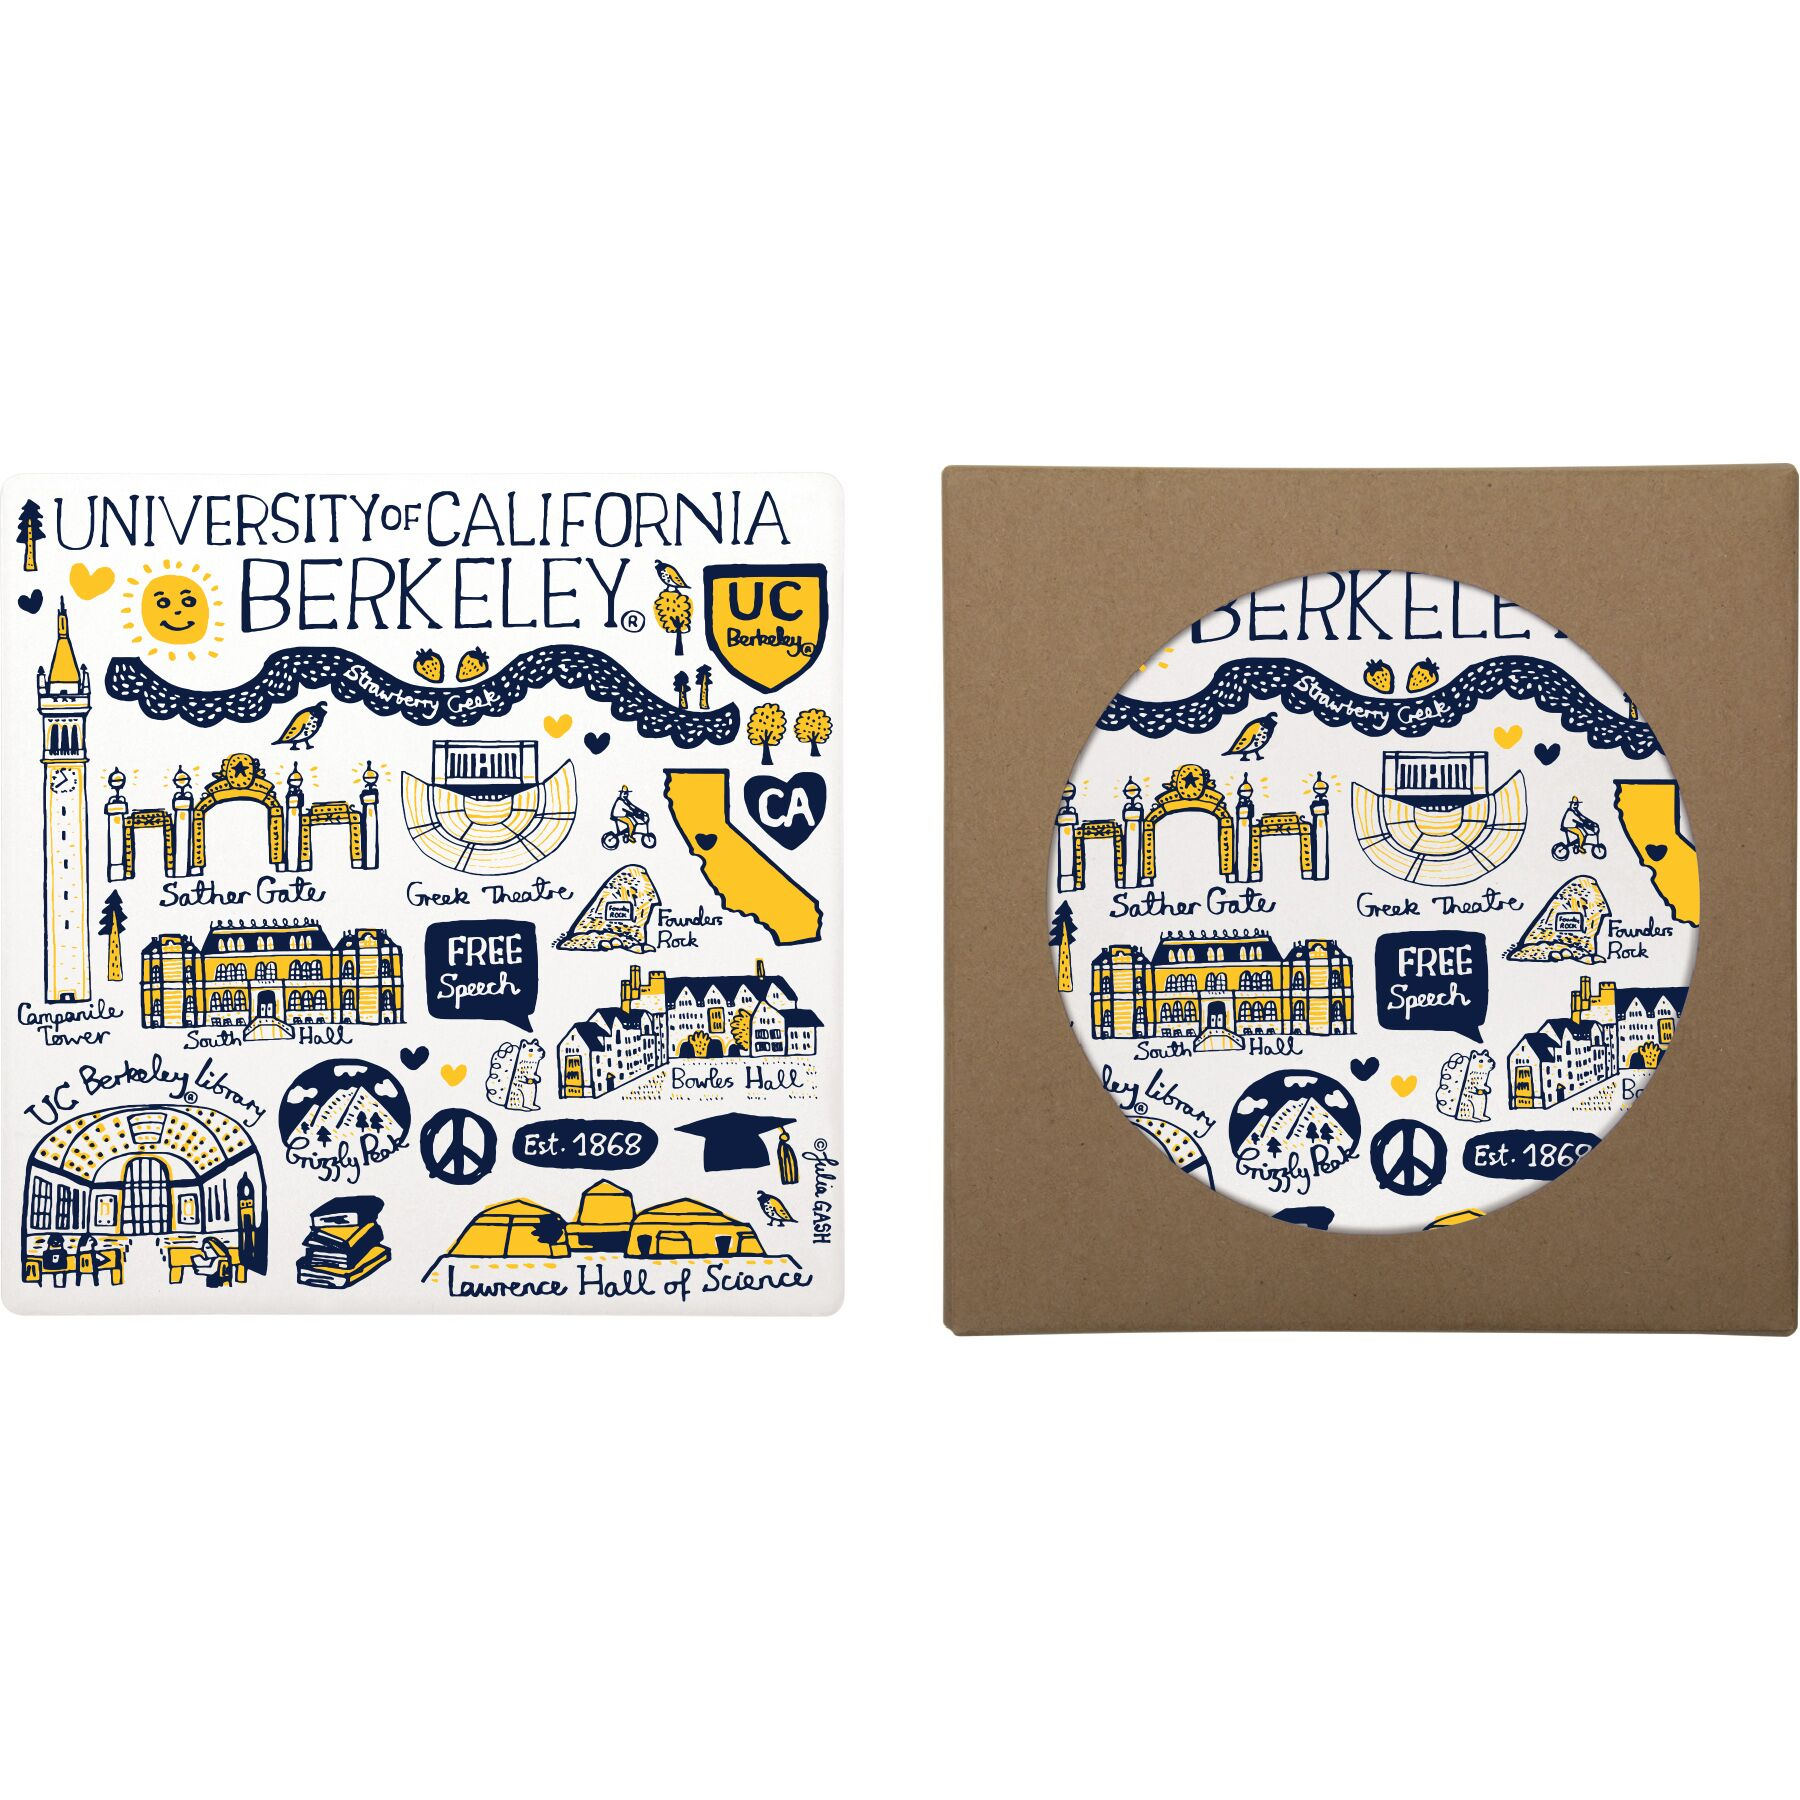 Cal Bears Square Absorbent Stone Trivet by Julia Gash